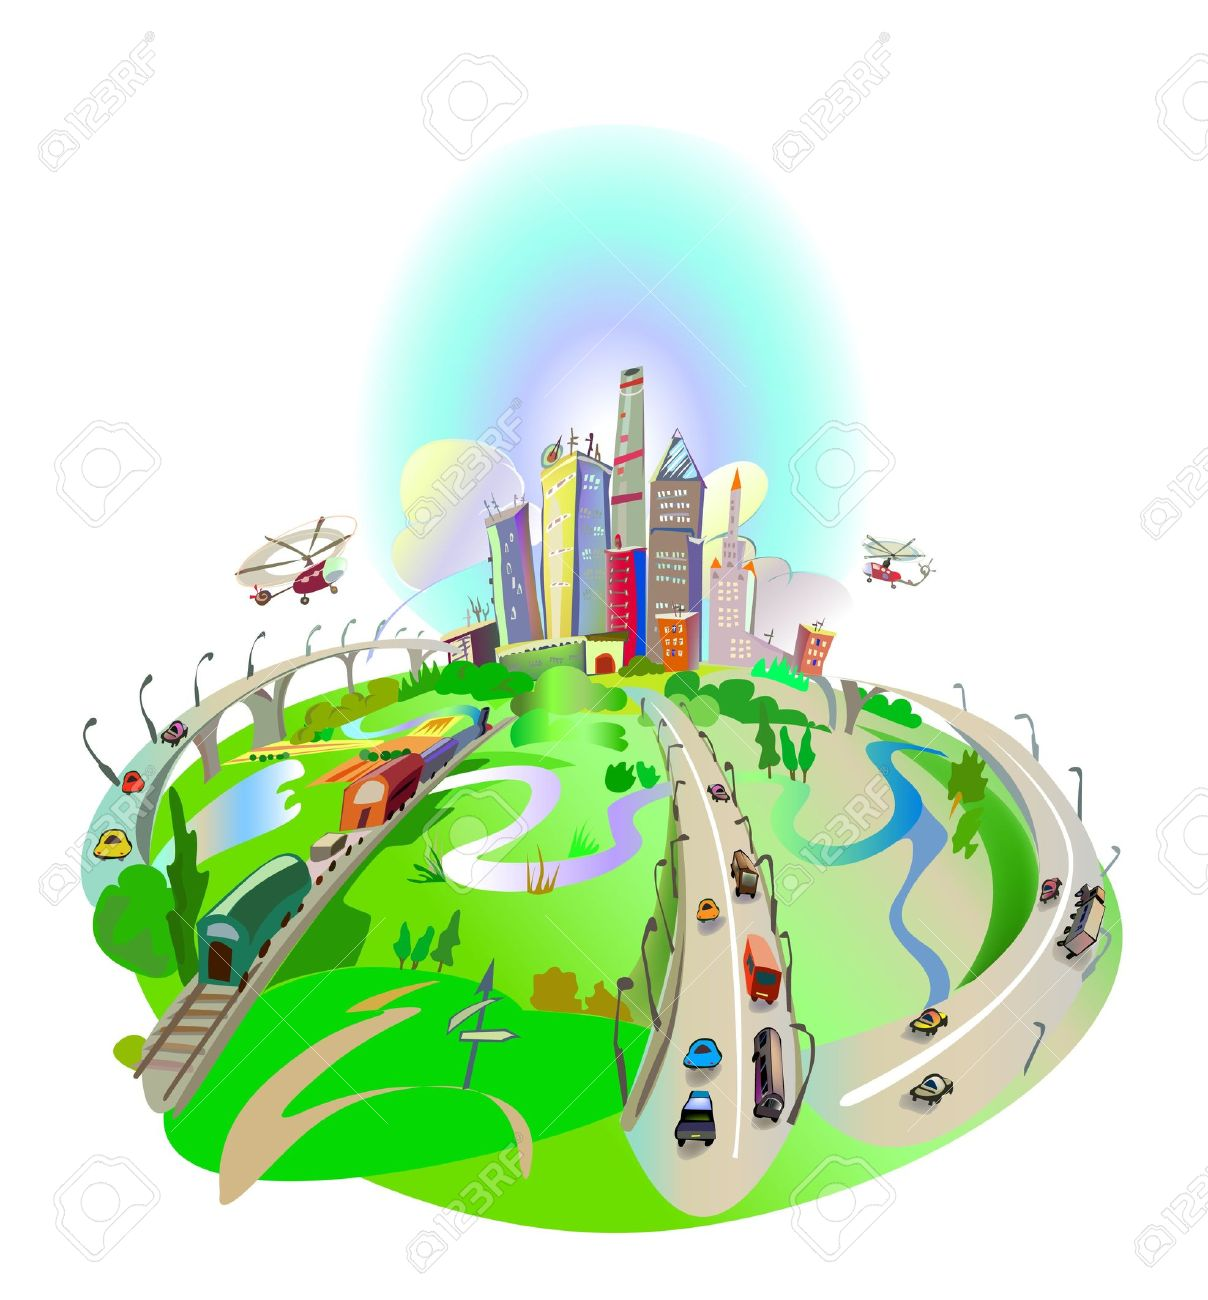 Roads Led To The City Royalty Free Cliparts, Vectors, And Stock.